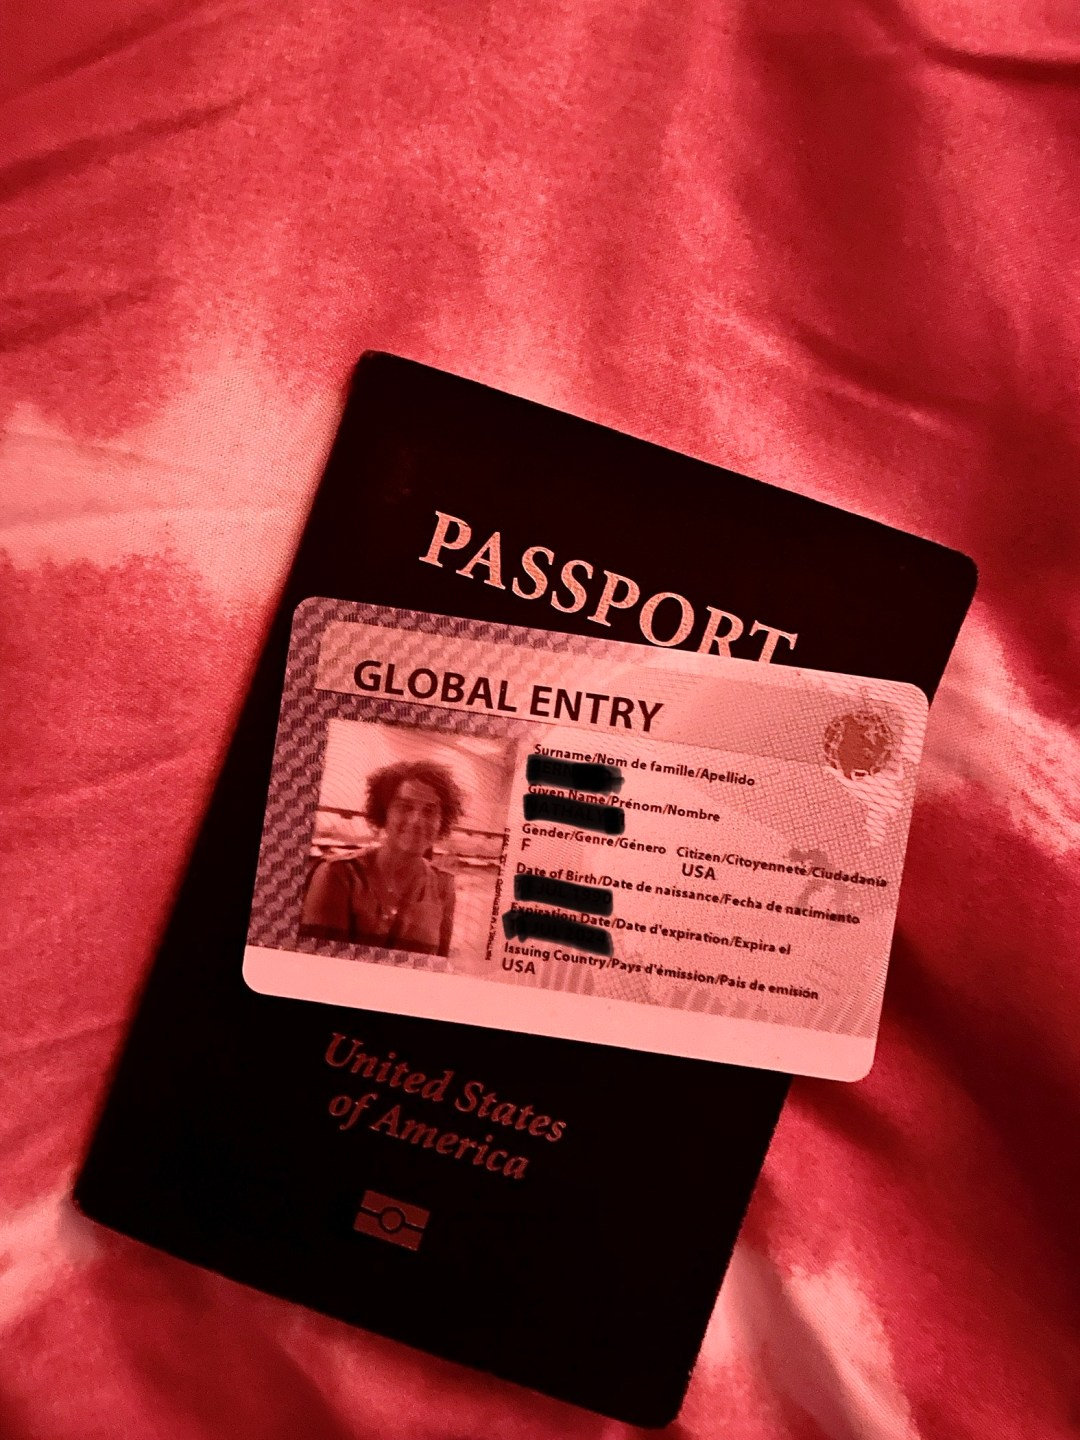 Global Entry and Passport